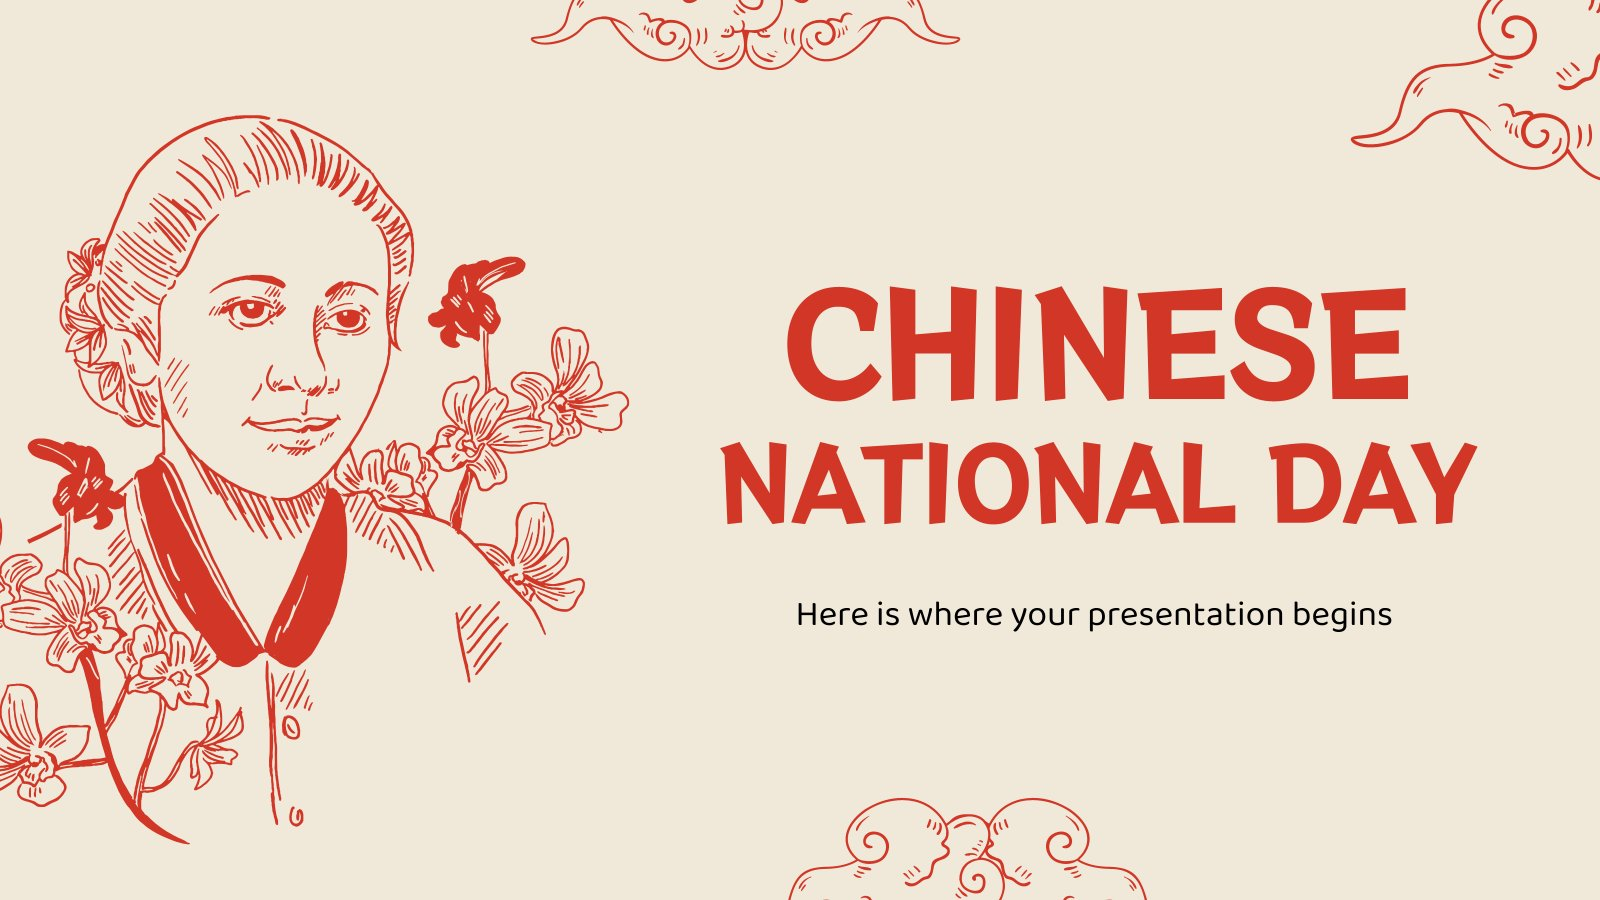 Chinese National Day presentation template